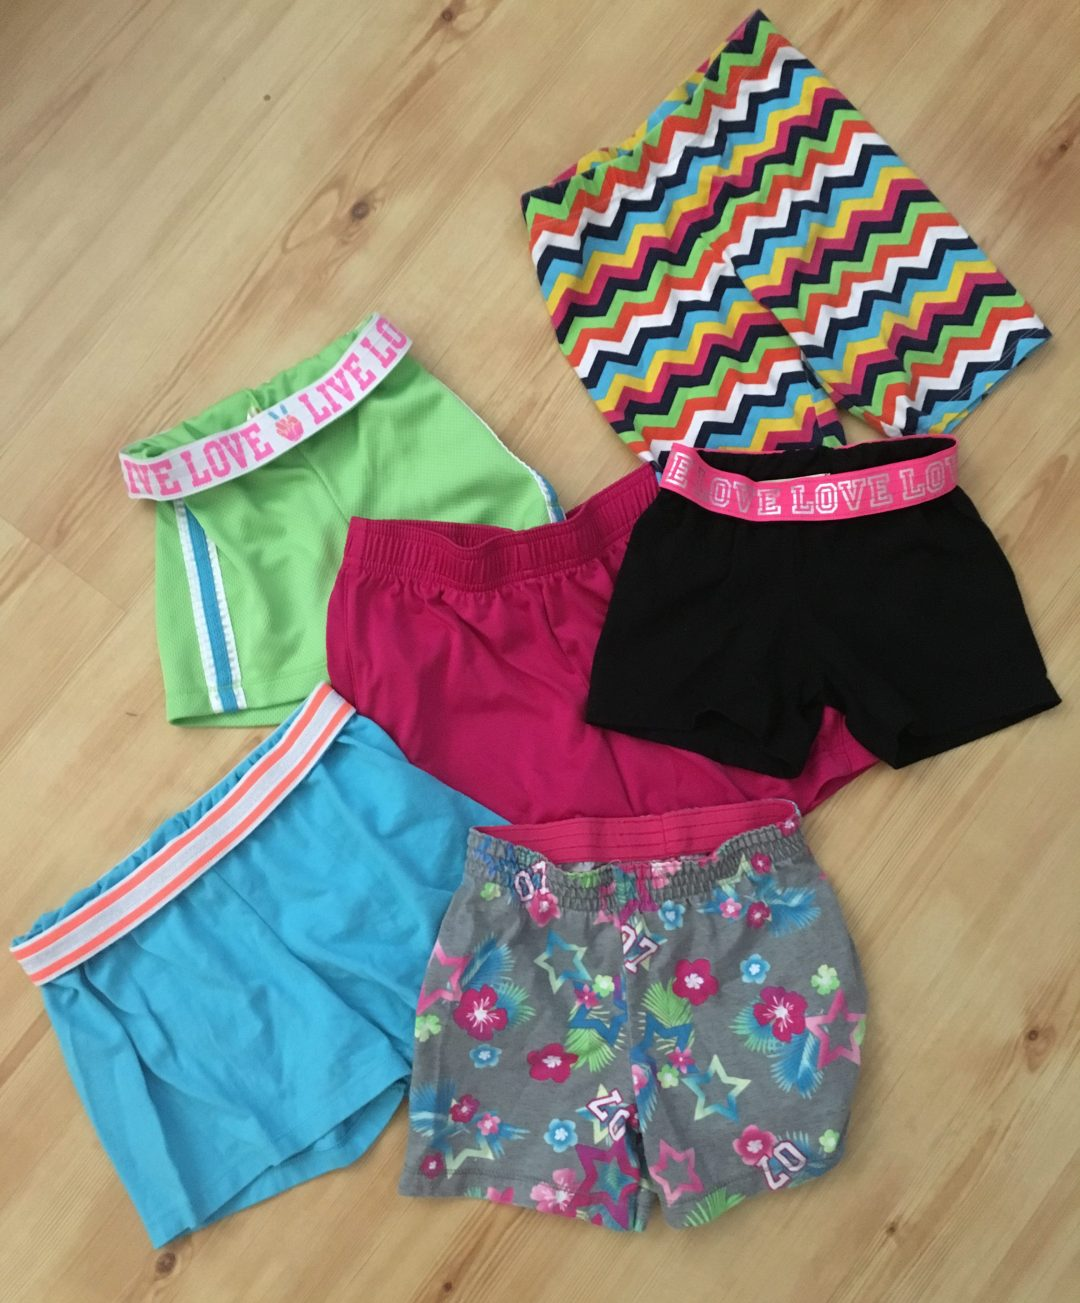 $1 shorts frugal clothes at walmart